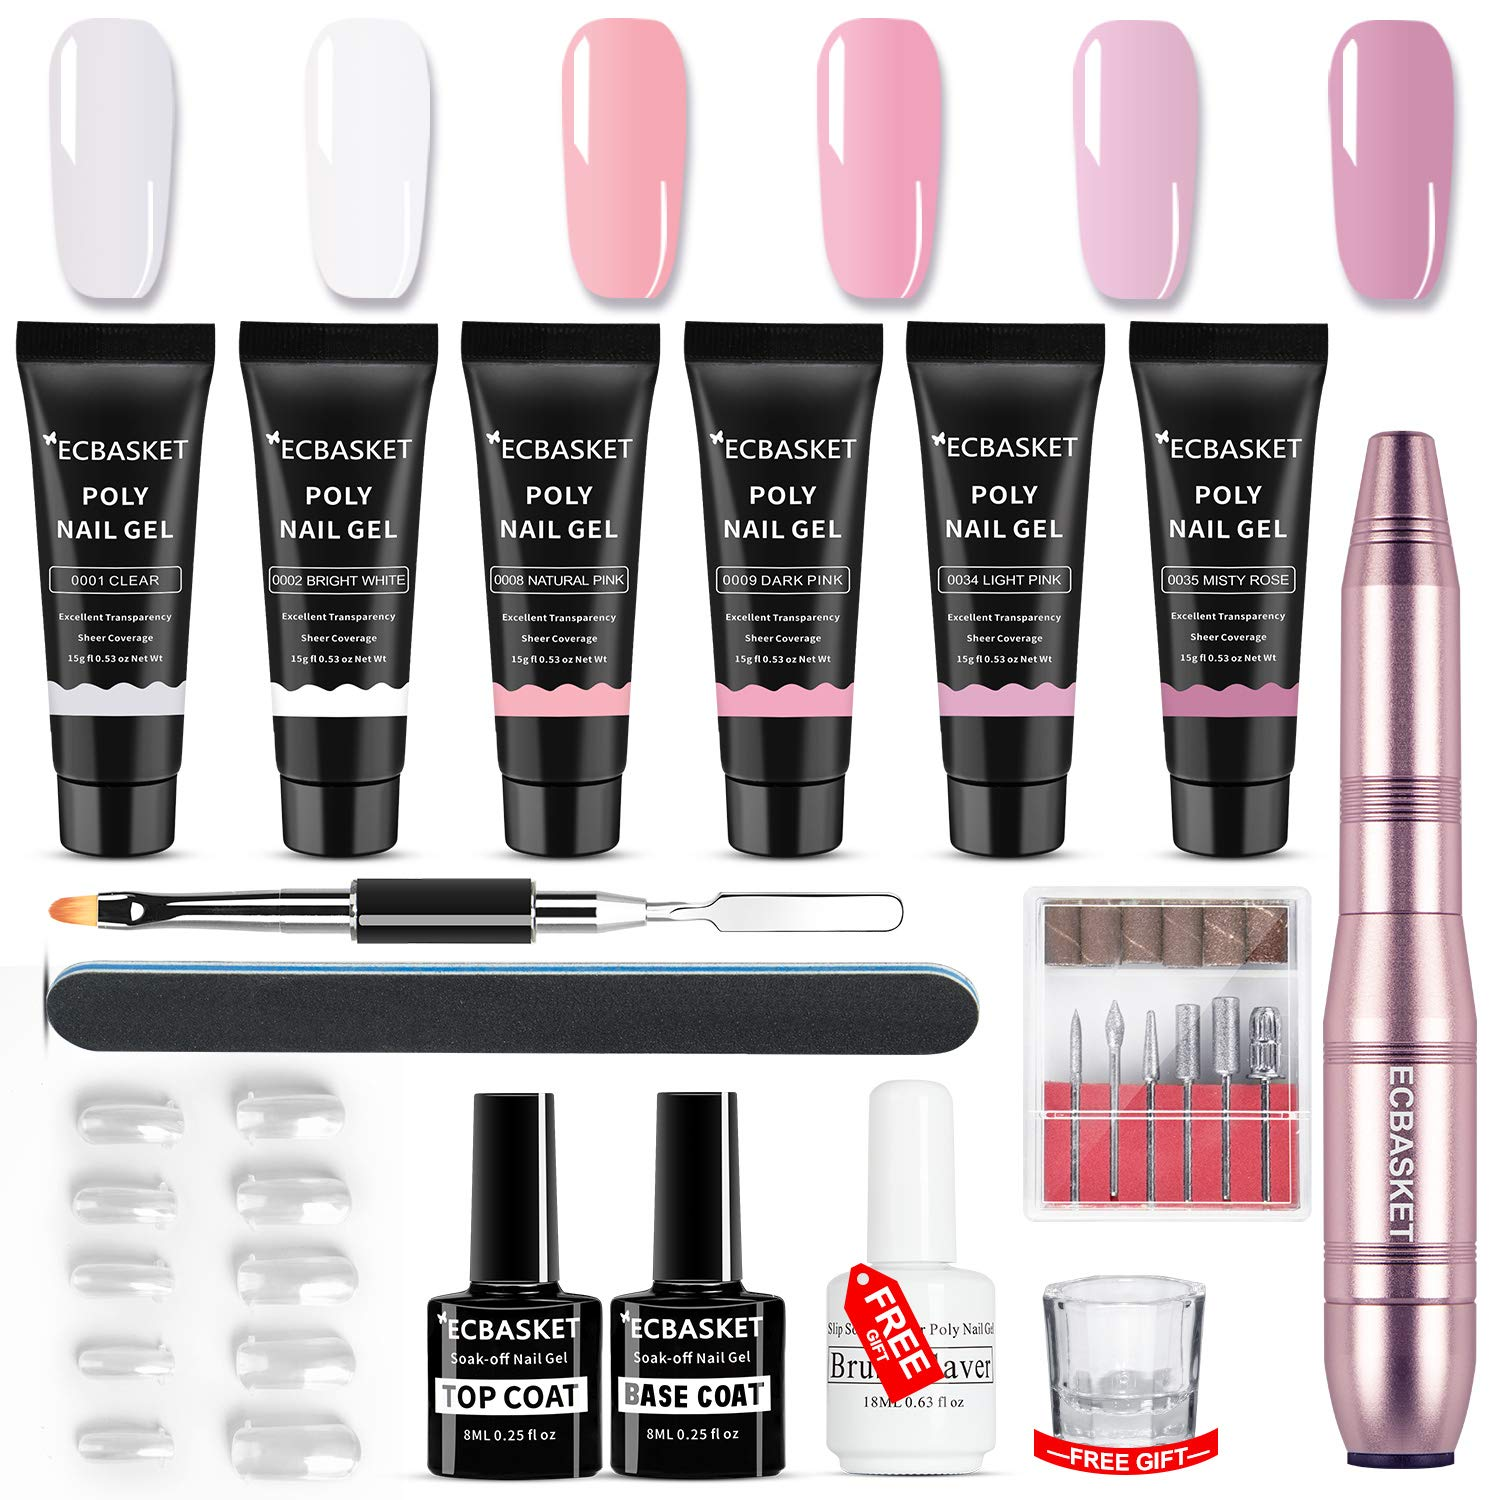 ECBASKET Poly Nail Gel Kit Nail Extension Gel Kit with Nail Drill Nail Enhancement Builder Gel Extension Gel Trial Kit with Slip Solution Professional Nail Technician All-in-One French Kit by ECBASKET